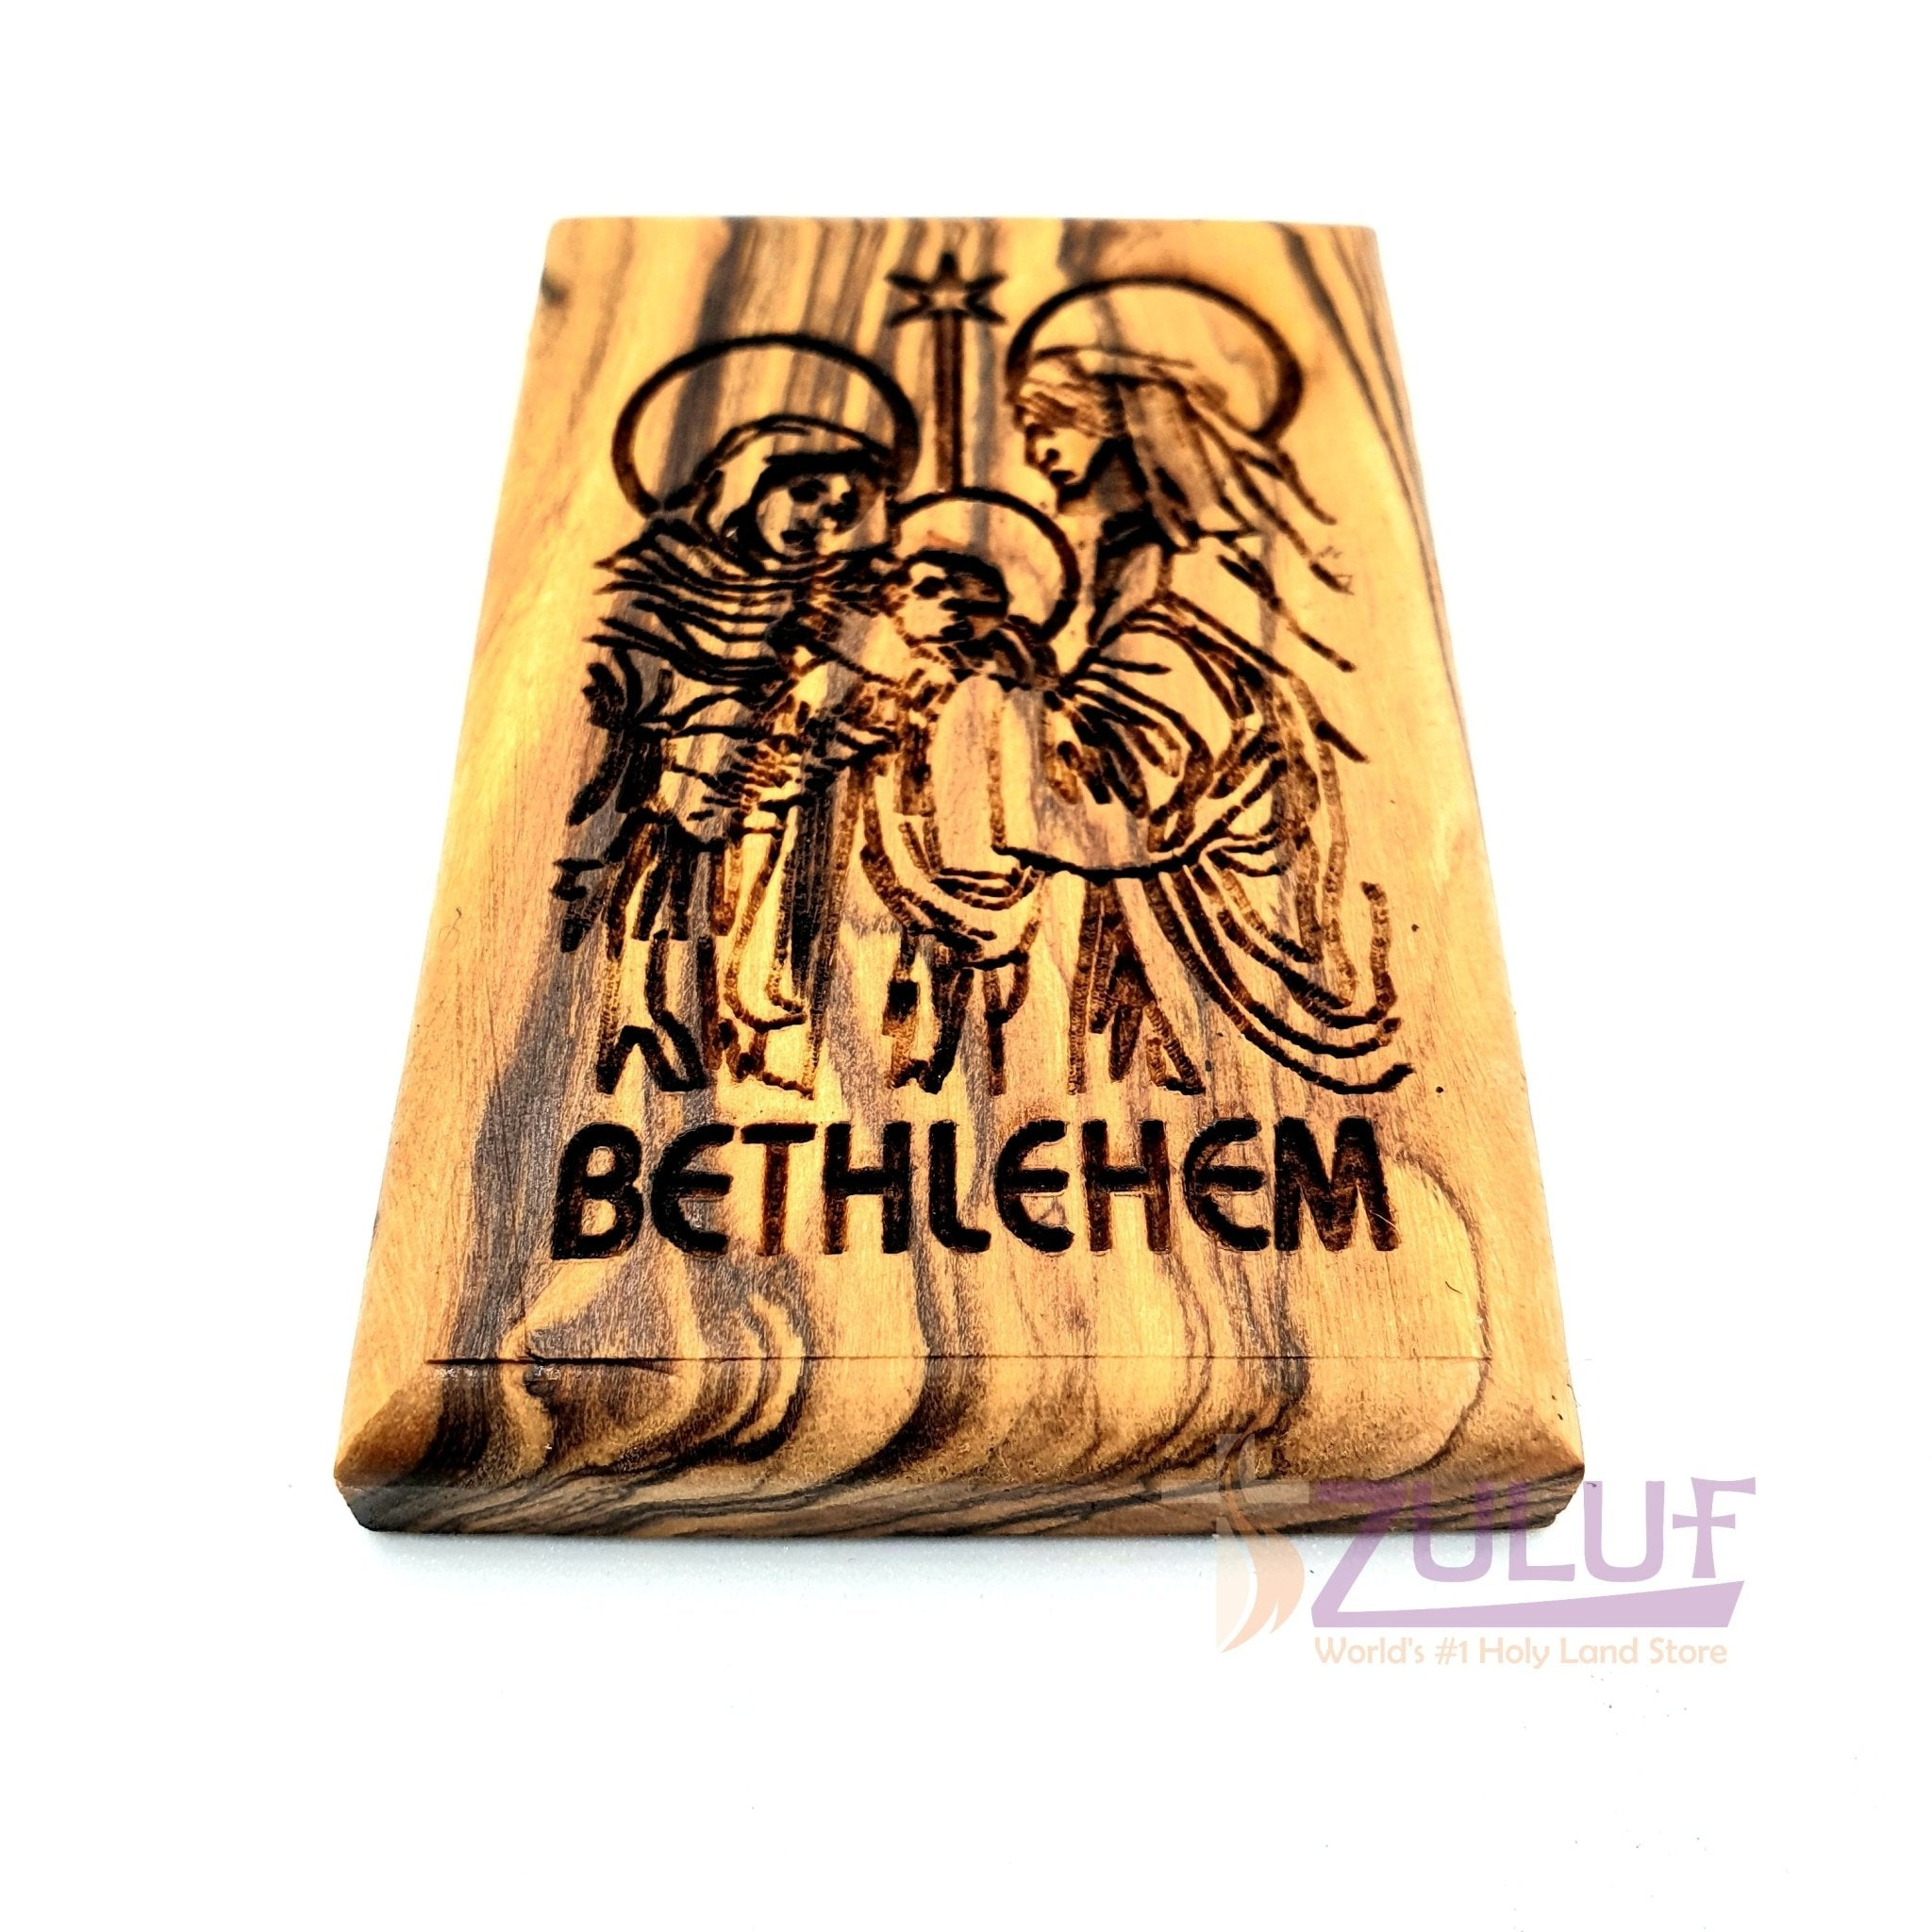 Holy family bethlehem star hand made Magnet Religious Art Olive Wood Holy Land - MAG080 - Zuluf